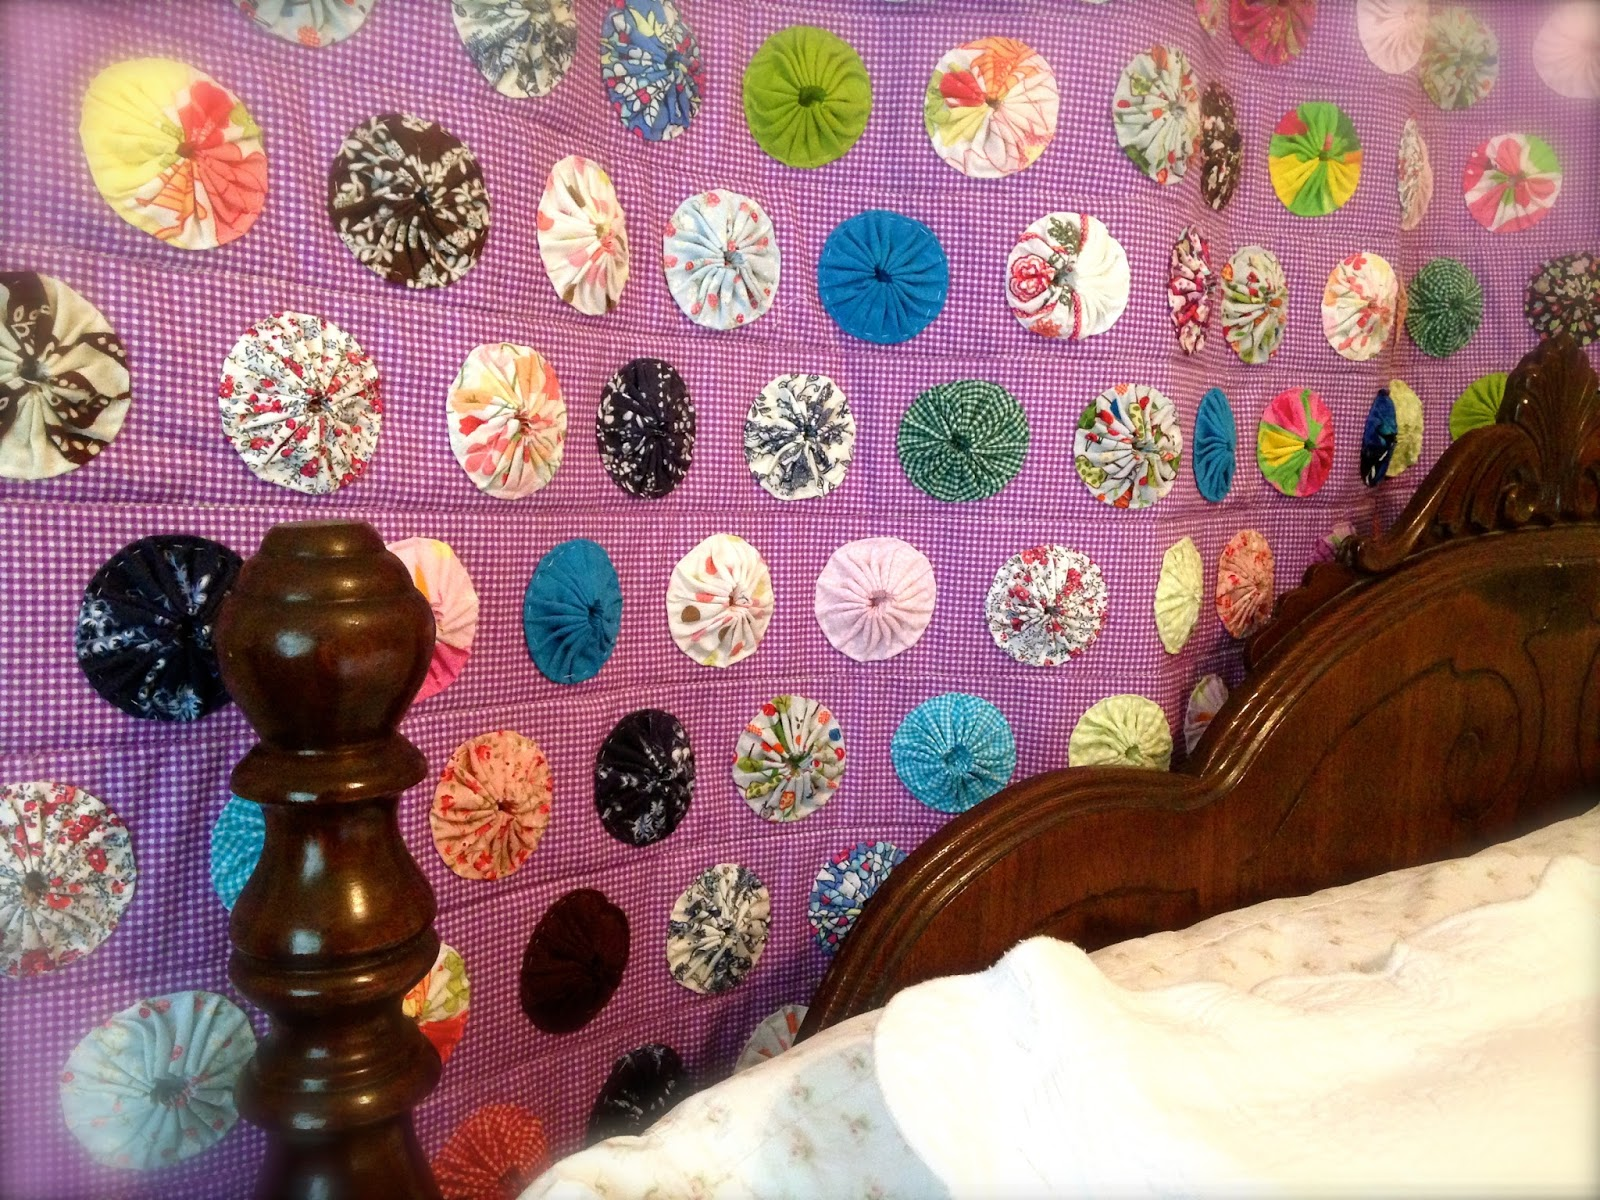 Creating a Beautiful Life: How to Decorate the Bedroom with Quilts